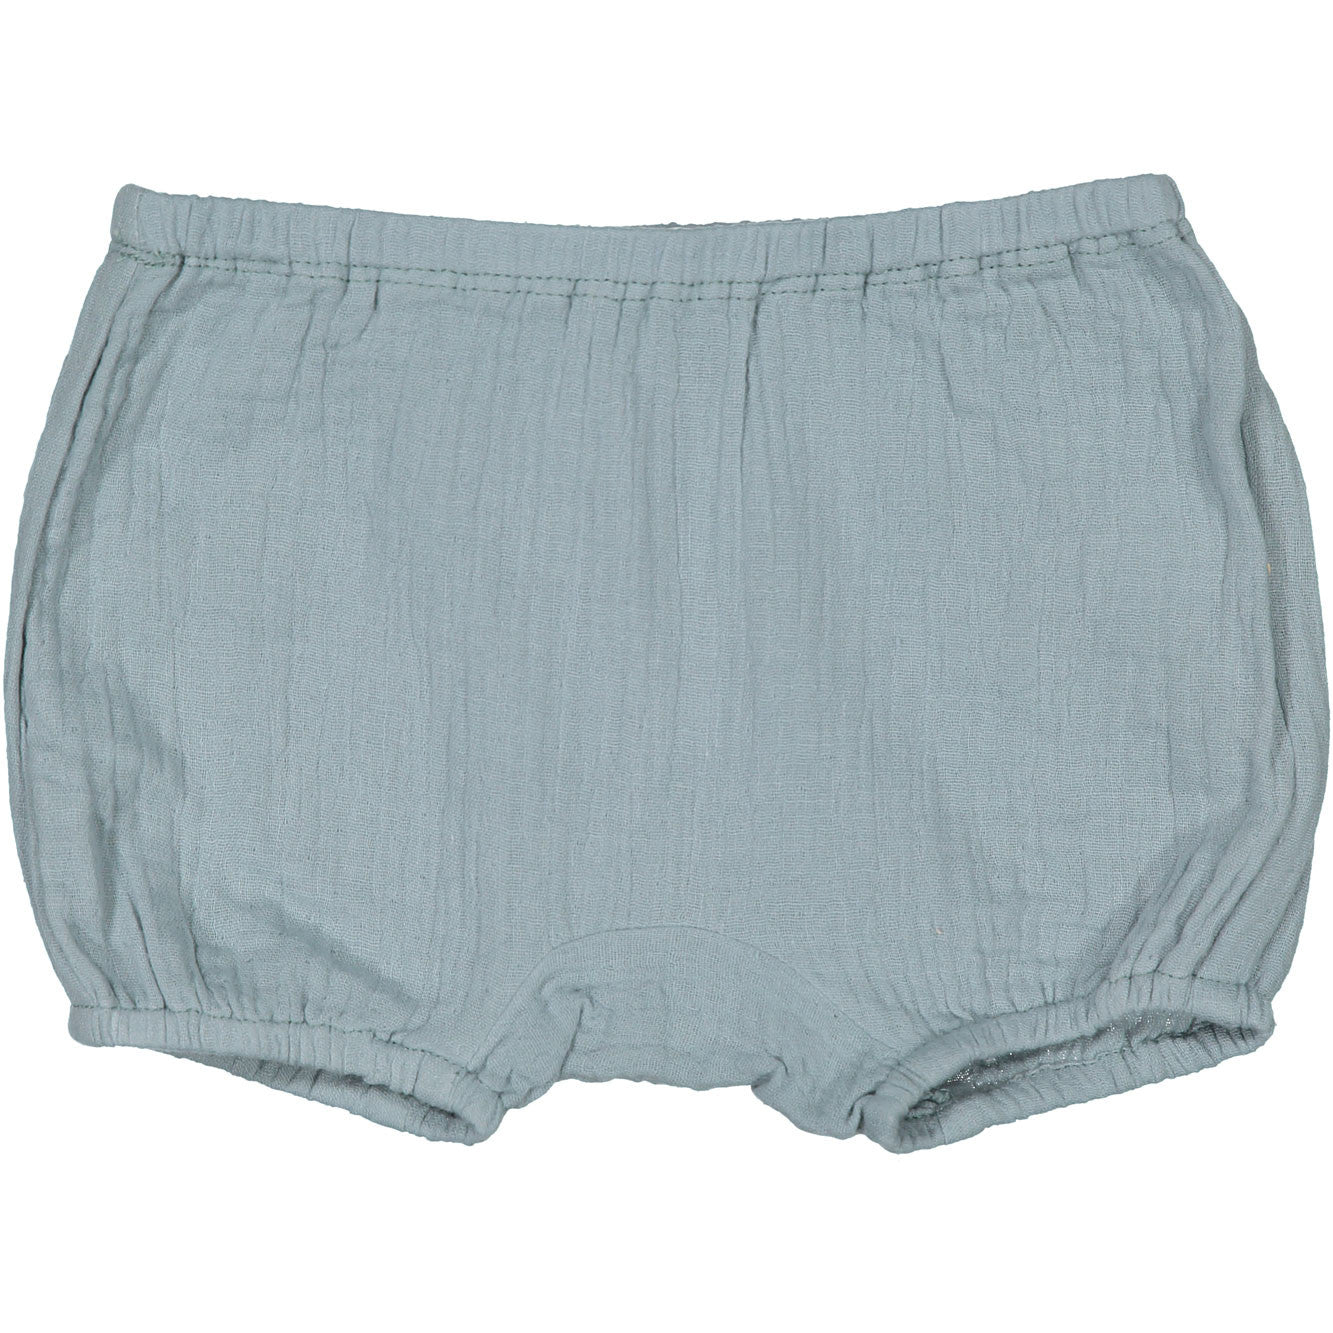 Coco Blanc Silver Blue Bloomers - Ladida